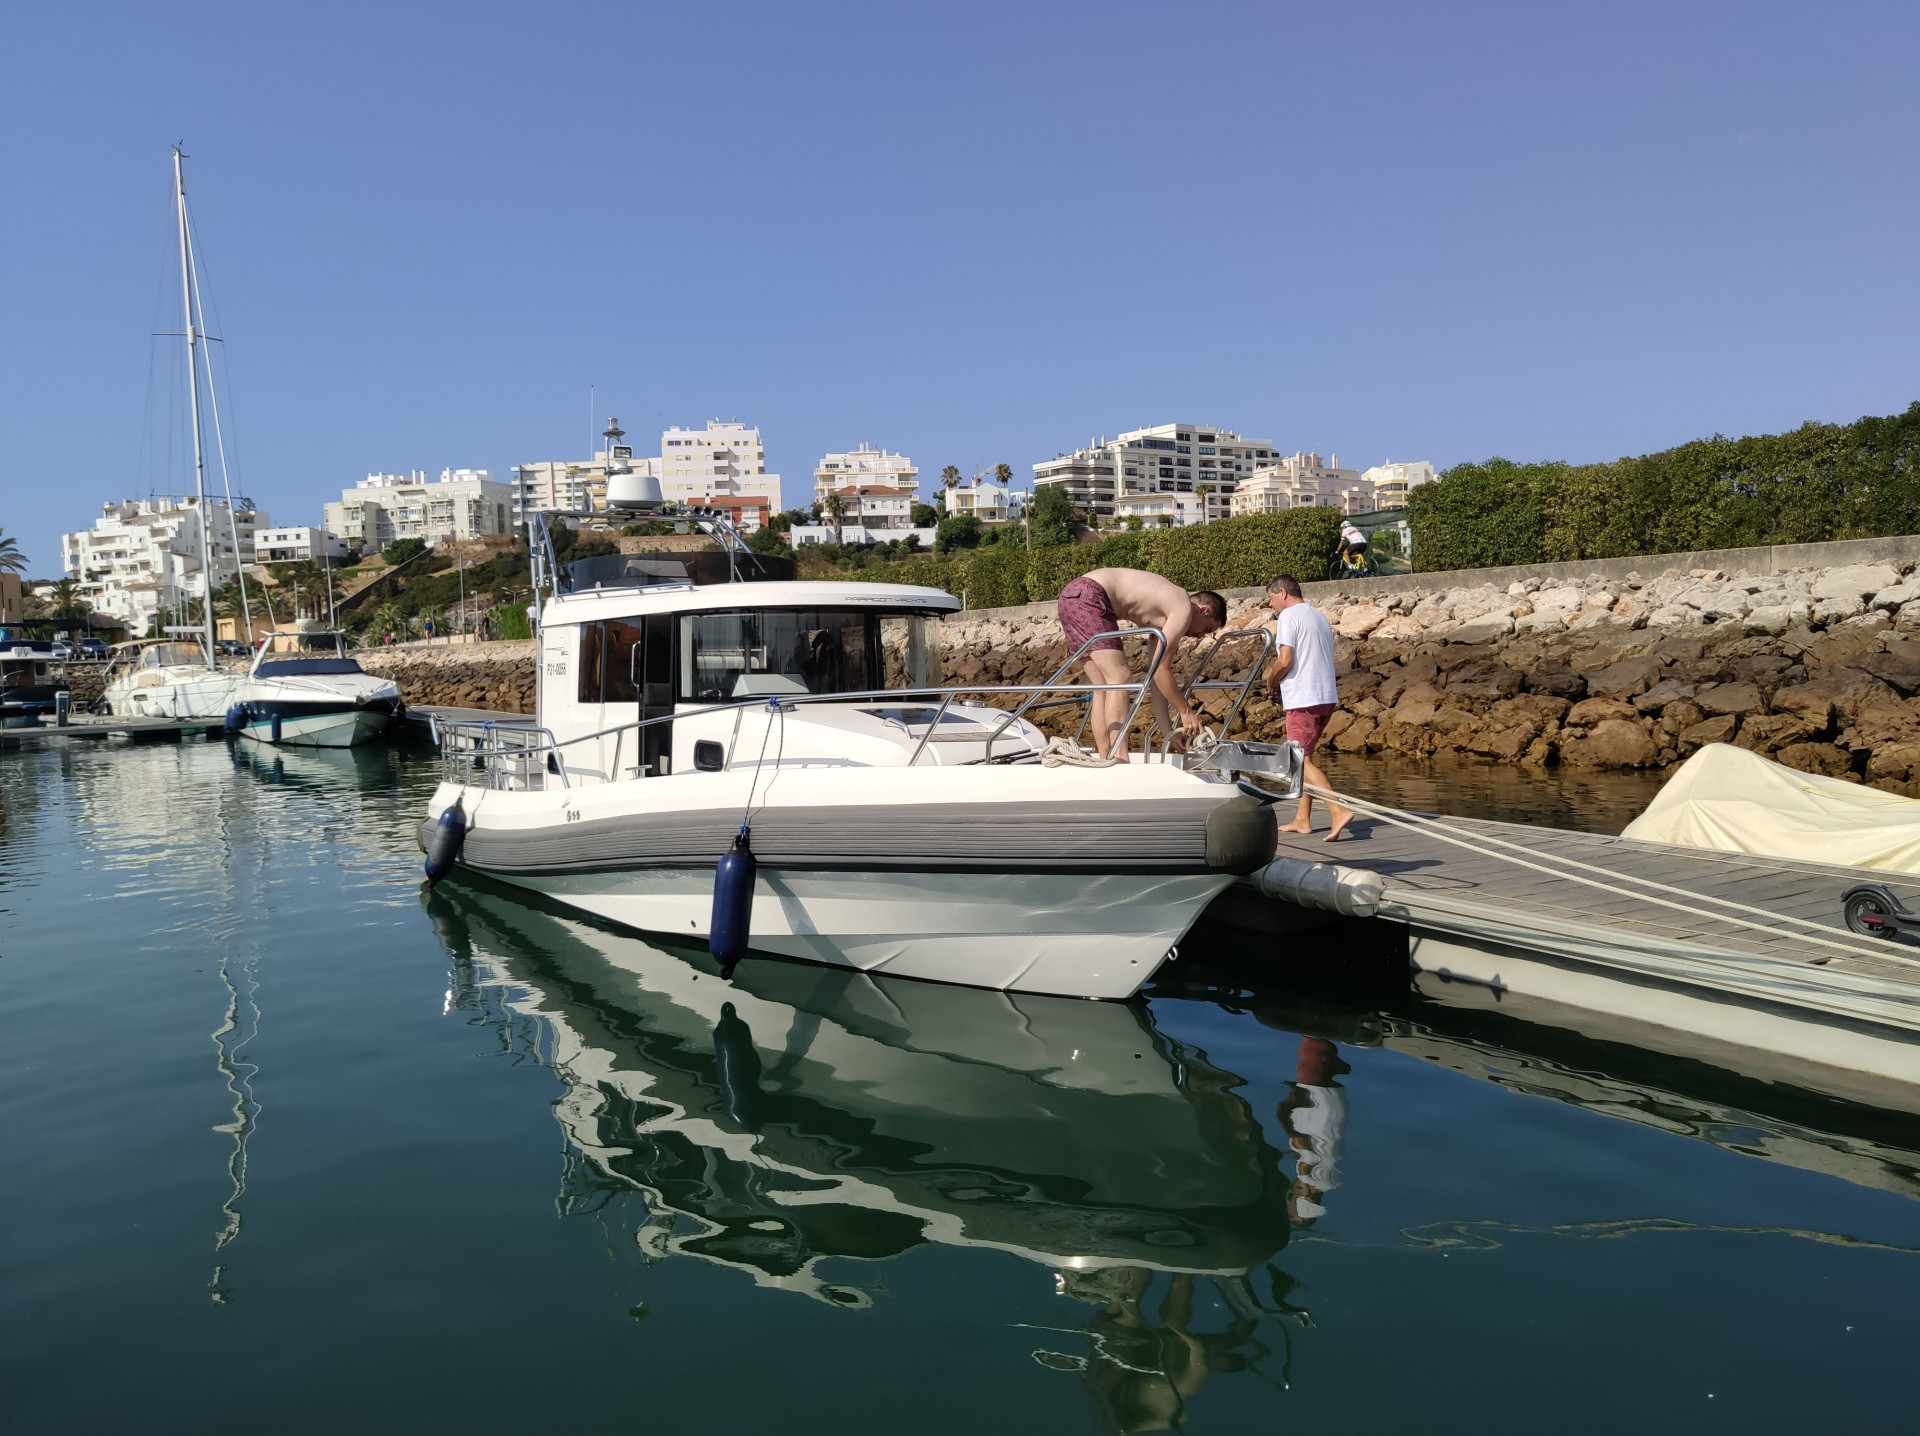 Yacht in the Portimão marina